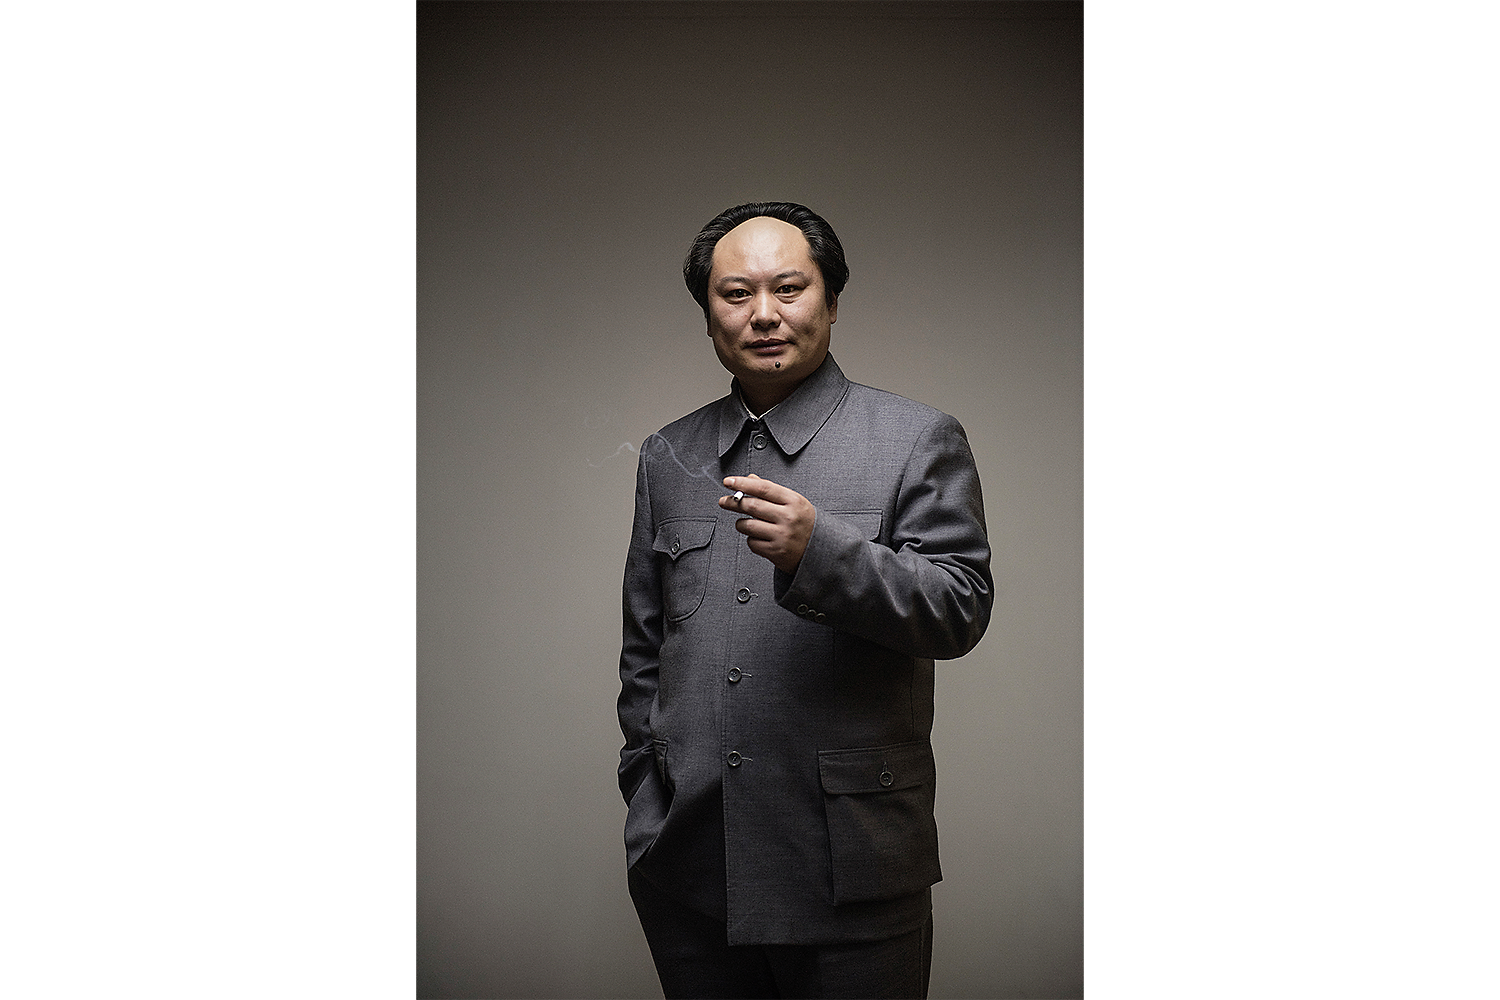 Mao impersonator Yang Chunlong poses for the photographer before a performance in Beijing. Photo by Matjaž Tančič @matjaztancic